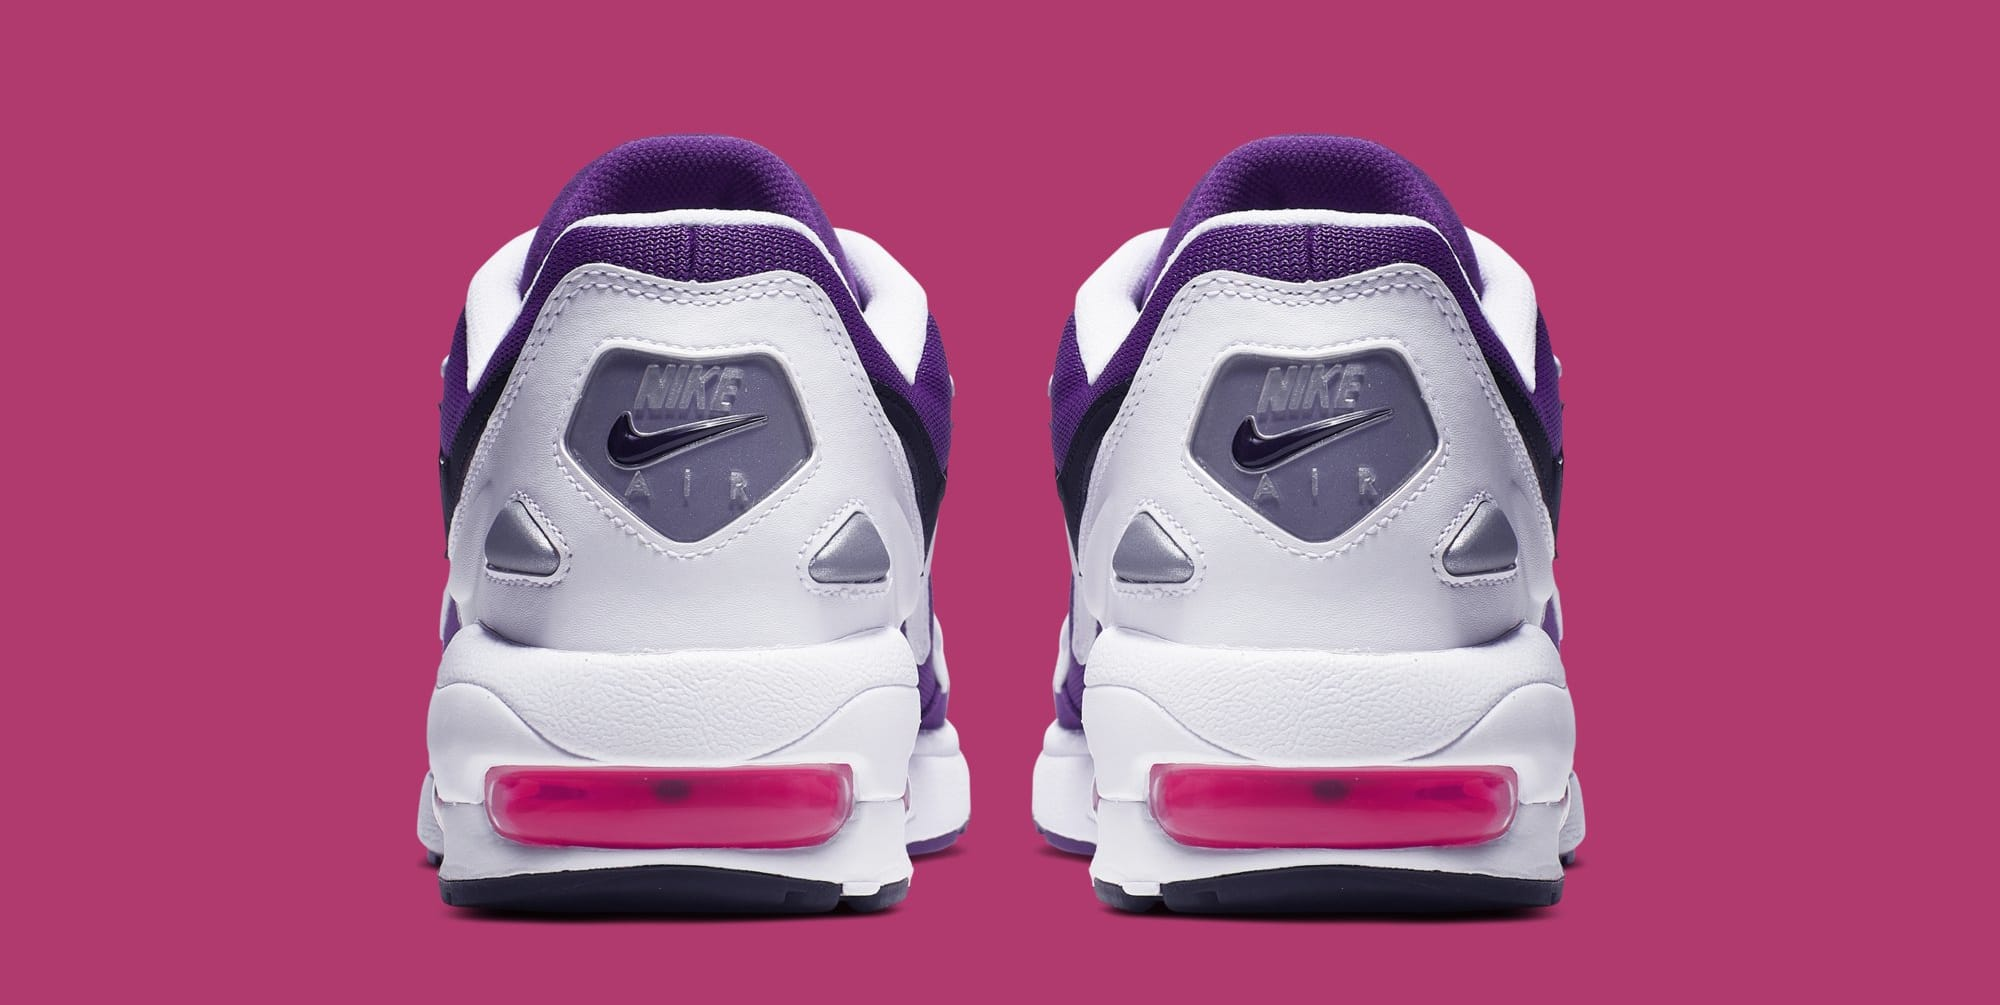 competitive price 3eef8 d2a36 Image via Nike Nike Air Max2 Light  White Court Purple-Hyper Pink  AO1741- 103